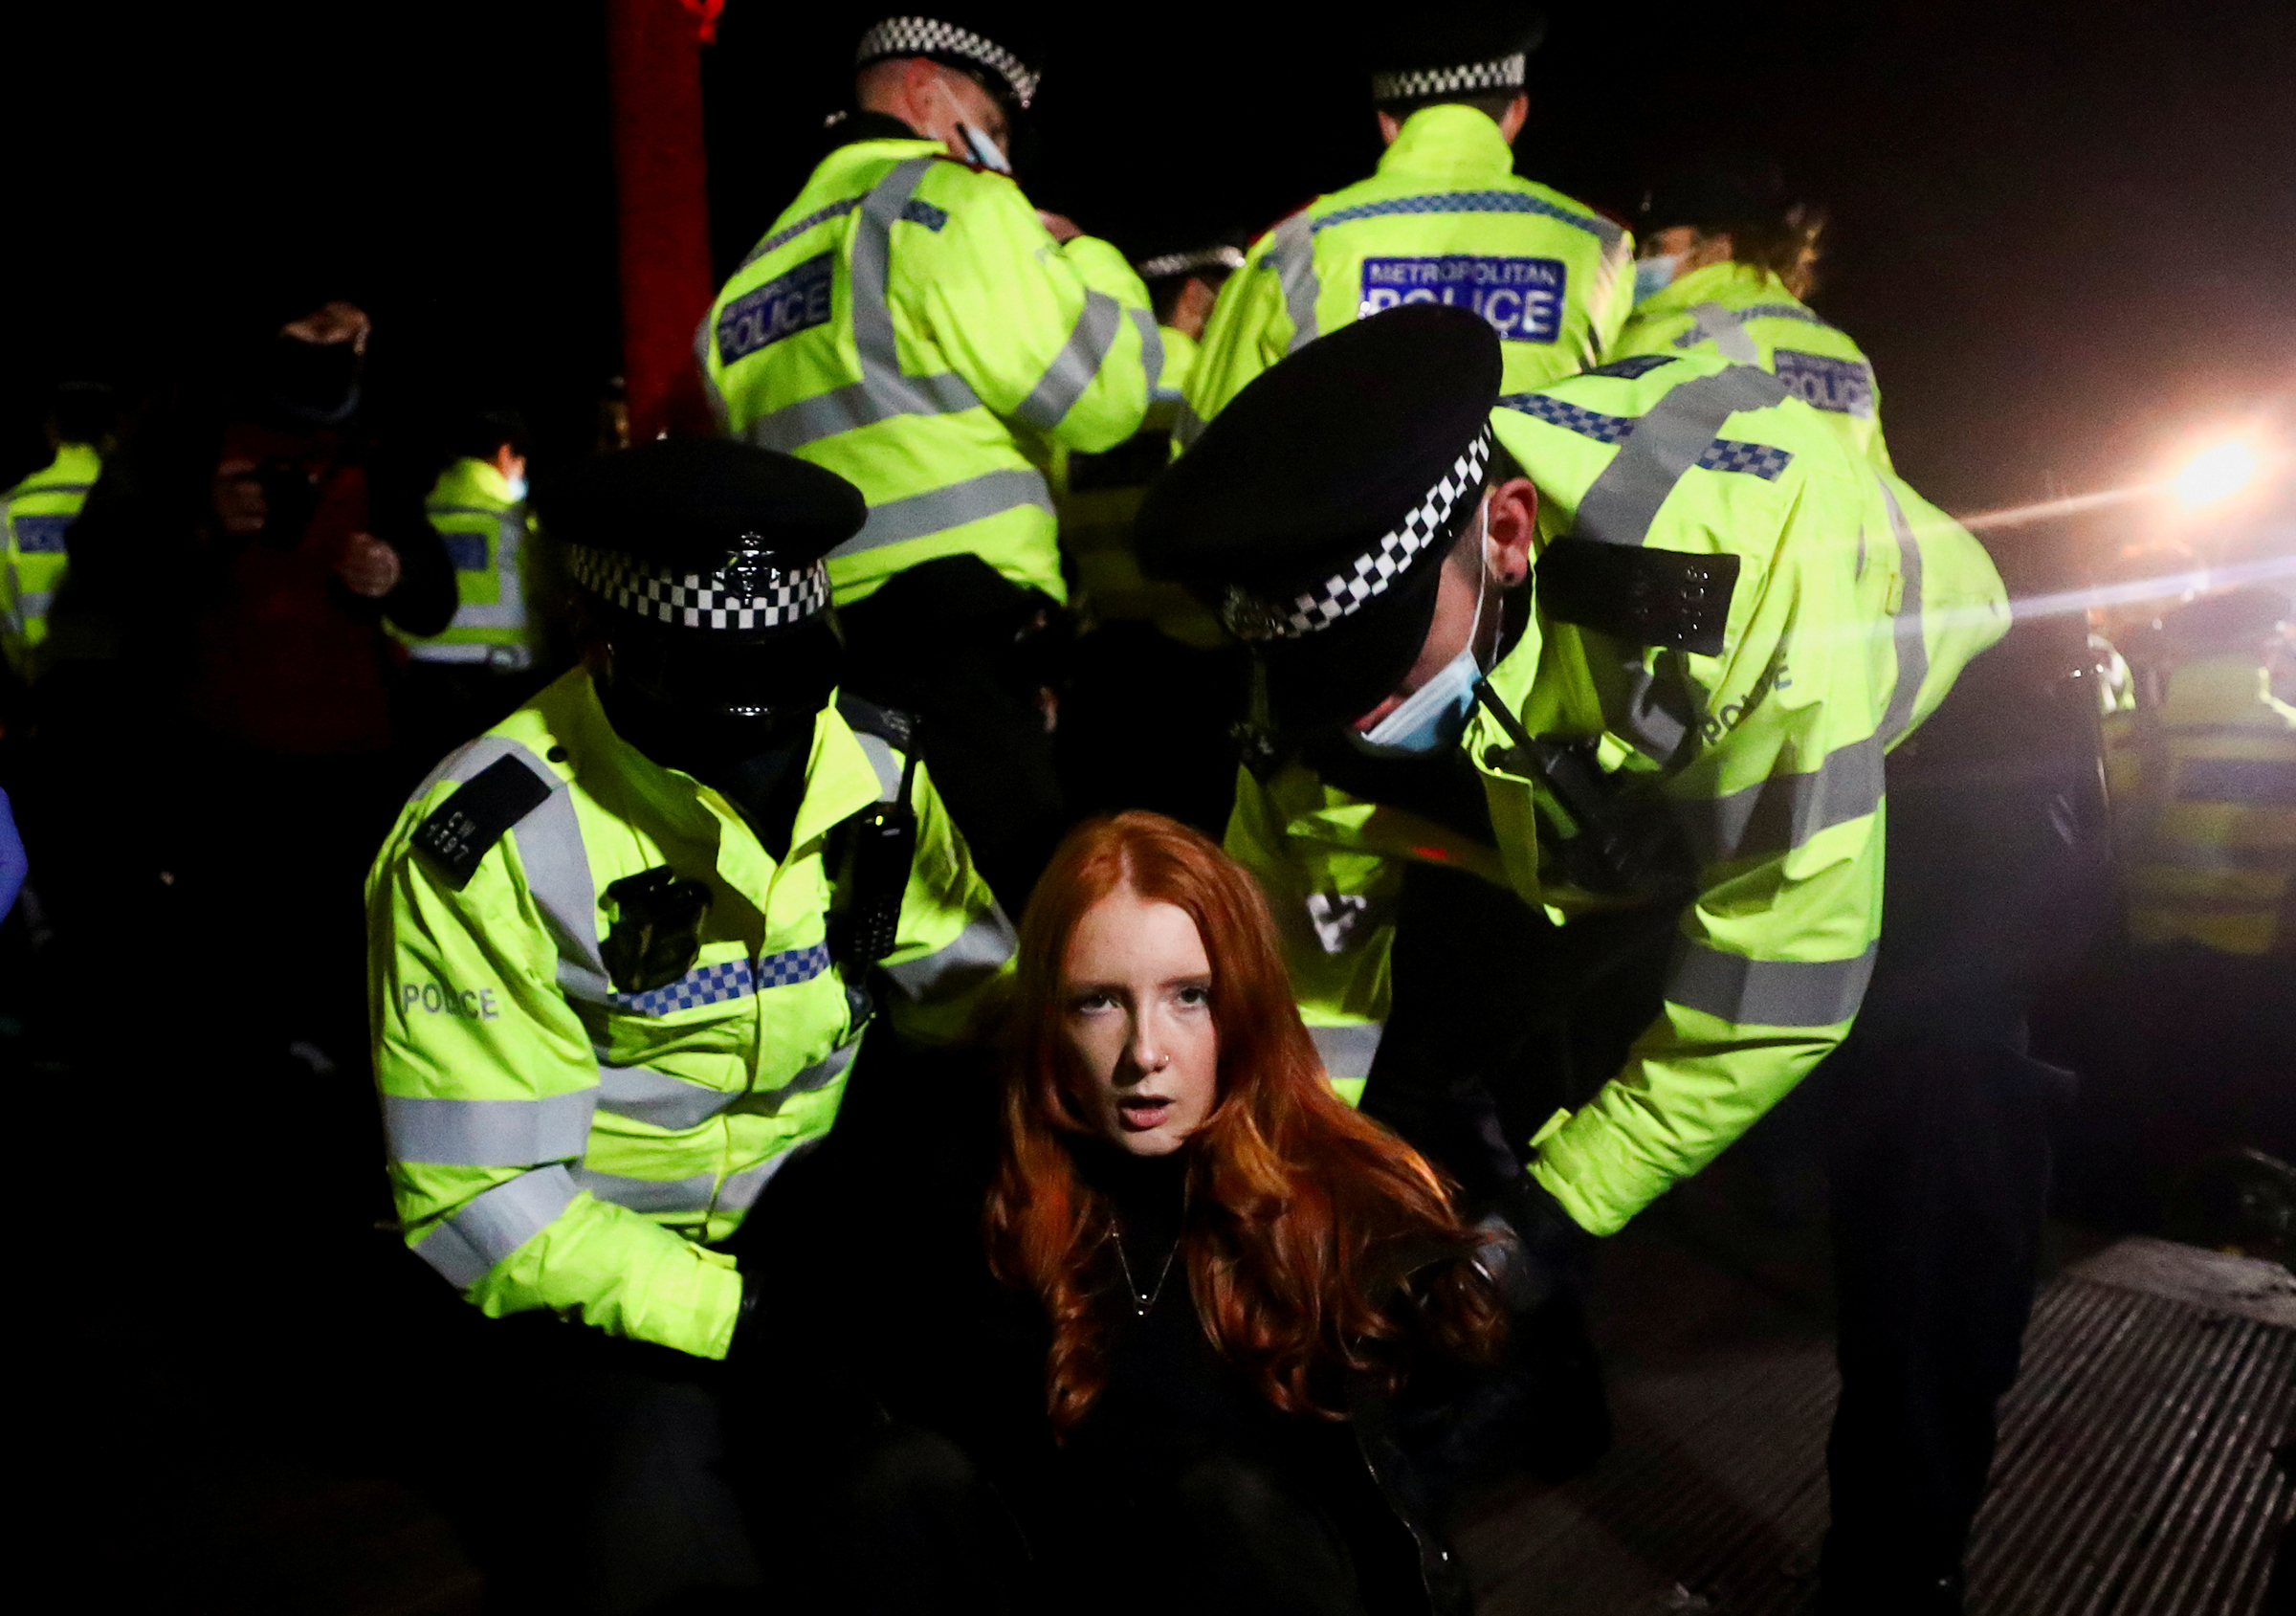 Police detain Patsy Stevenson as people gather at a memorial site in Clapham Common Bandstand, following the kidnap and murder of Sarah Everard, in London on March 13